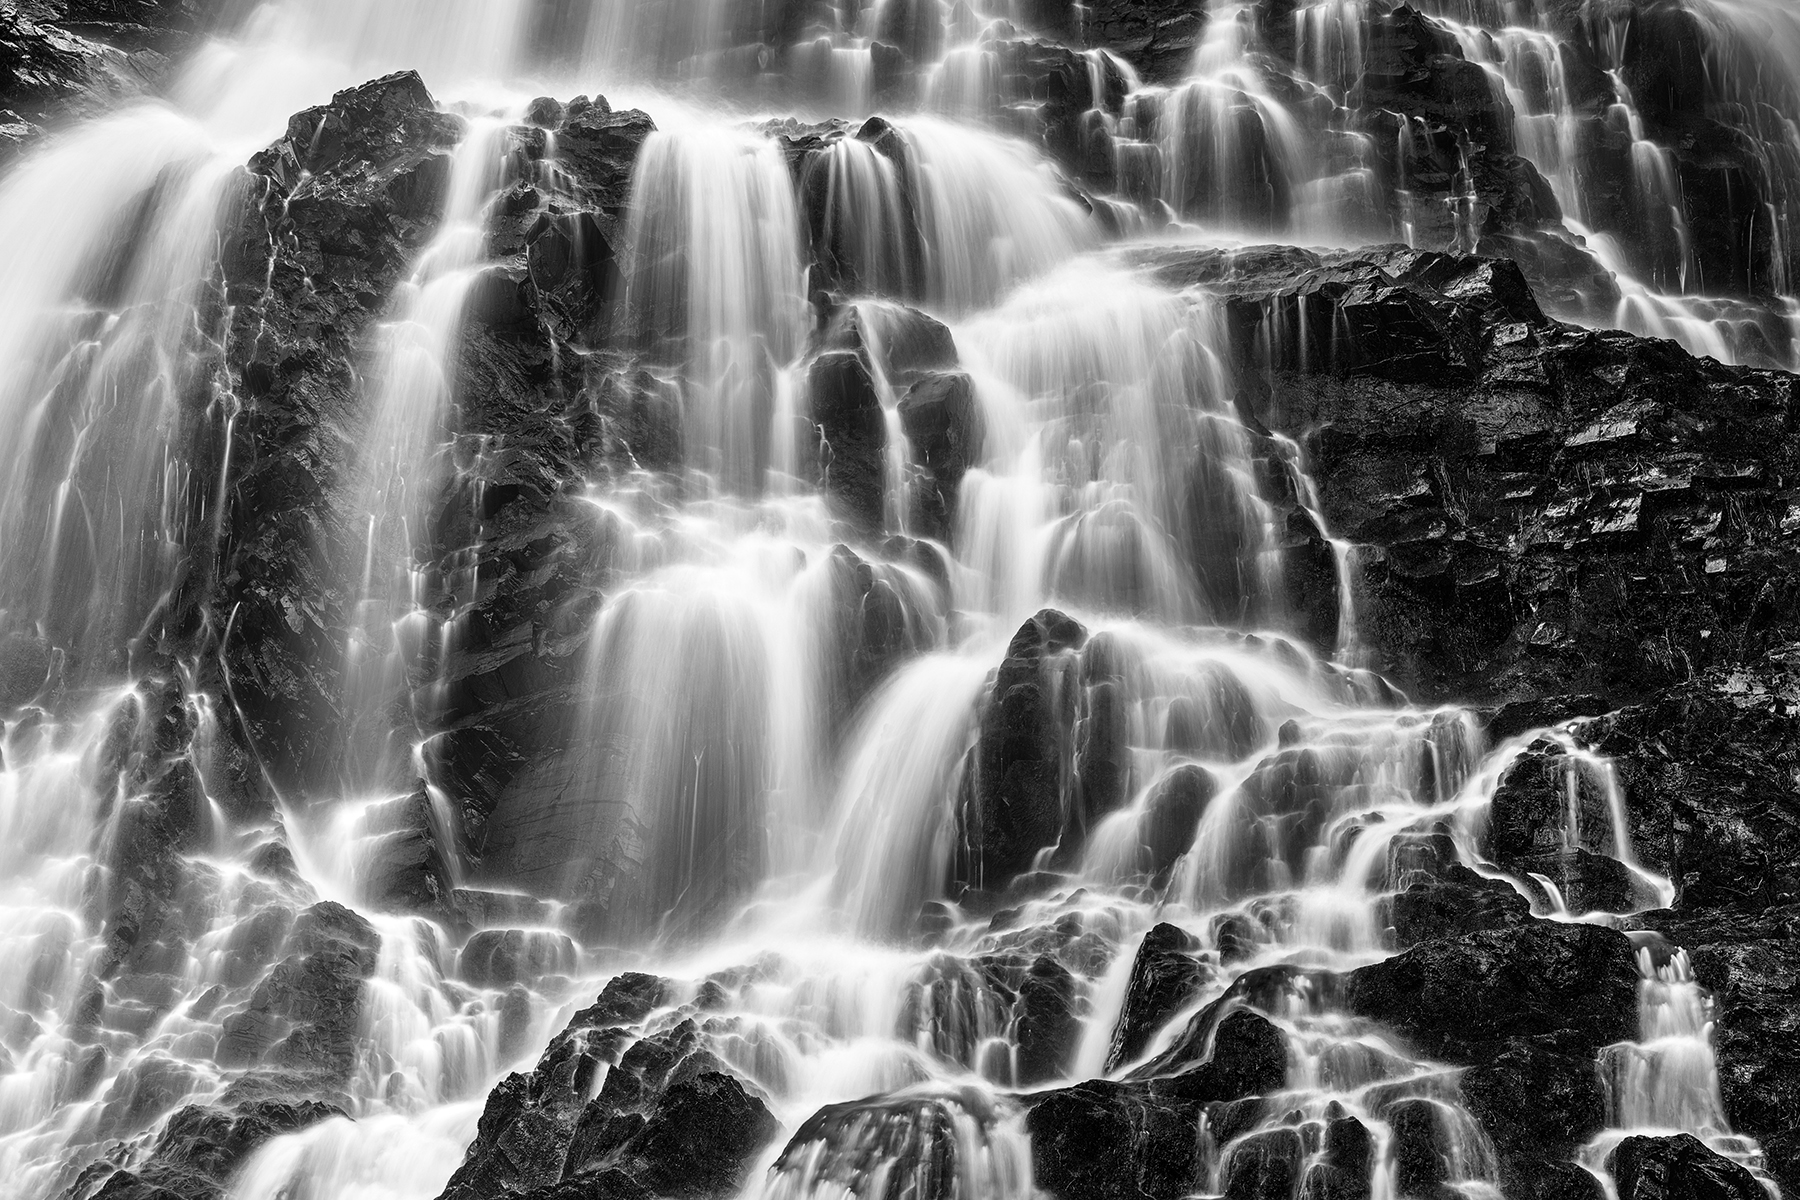 Hays rugged falls - black & white photo